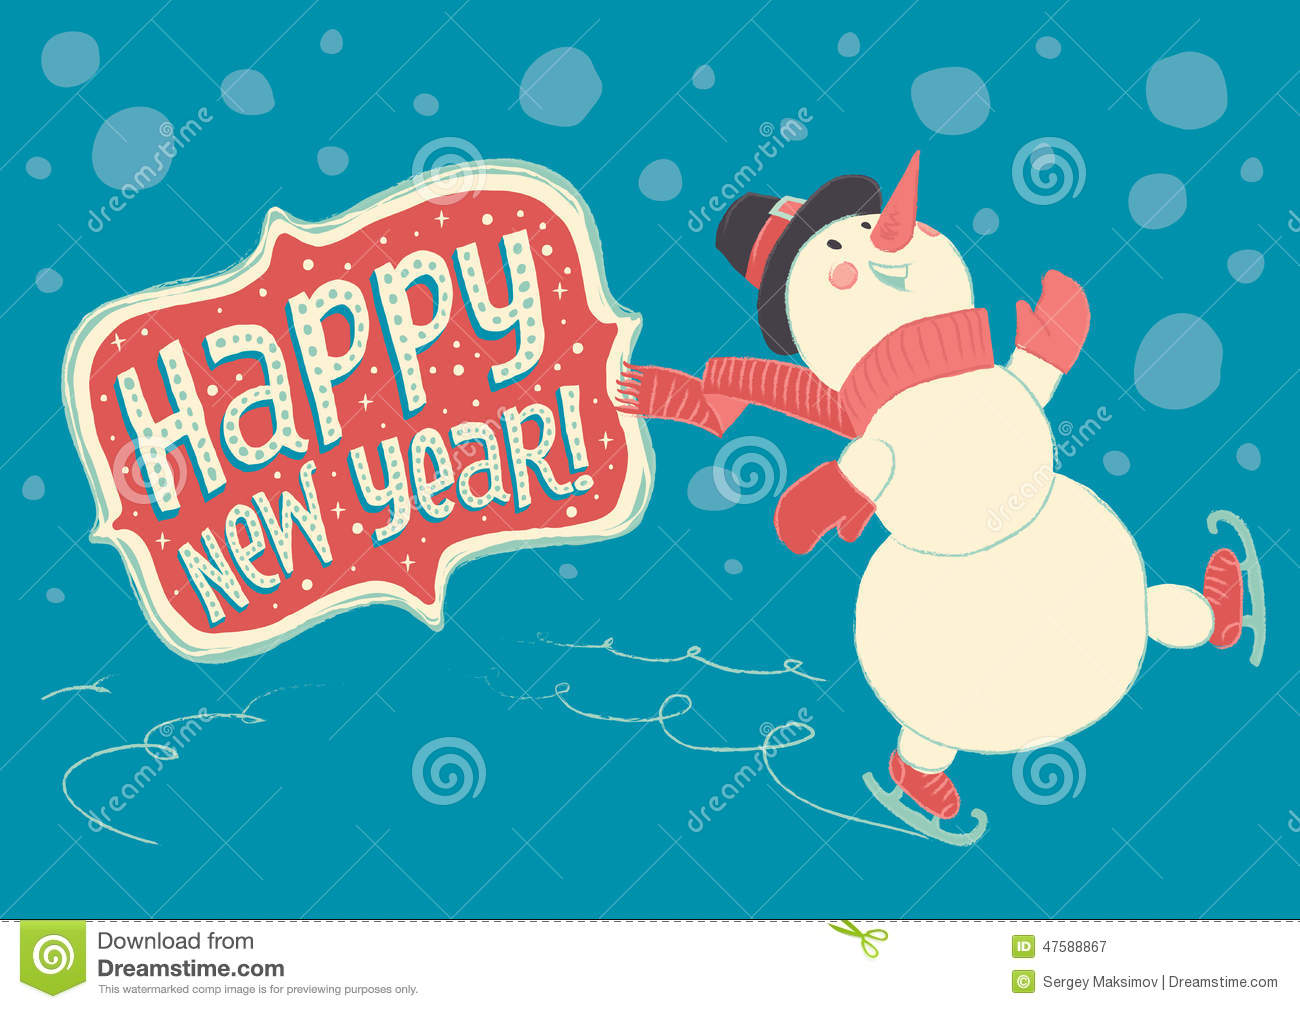 Cute Snowman Christmas Wallpaper Joyful Snowman Skating On Ice And Wishes Happy New Year